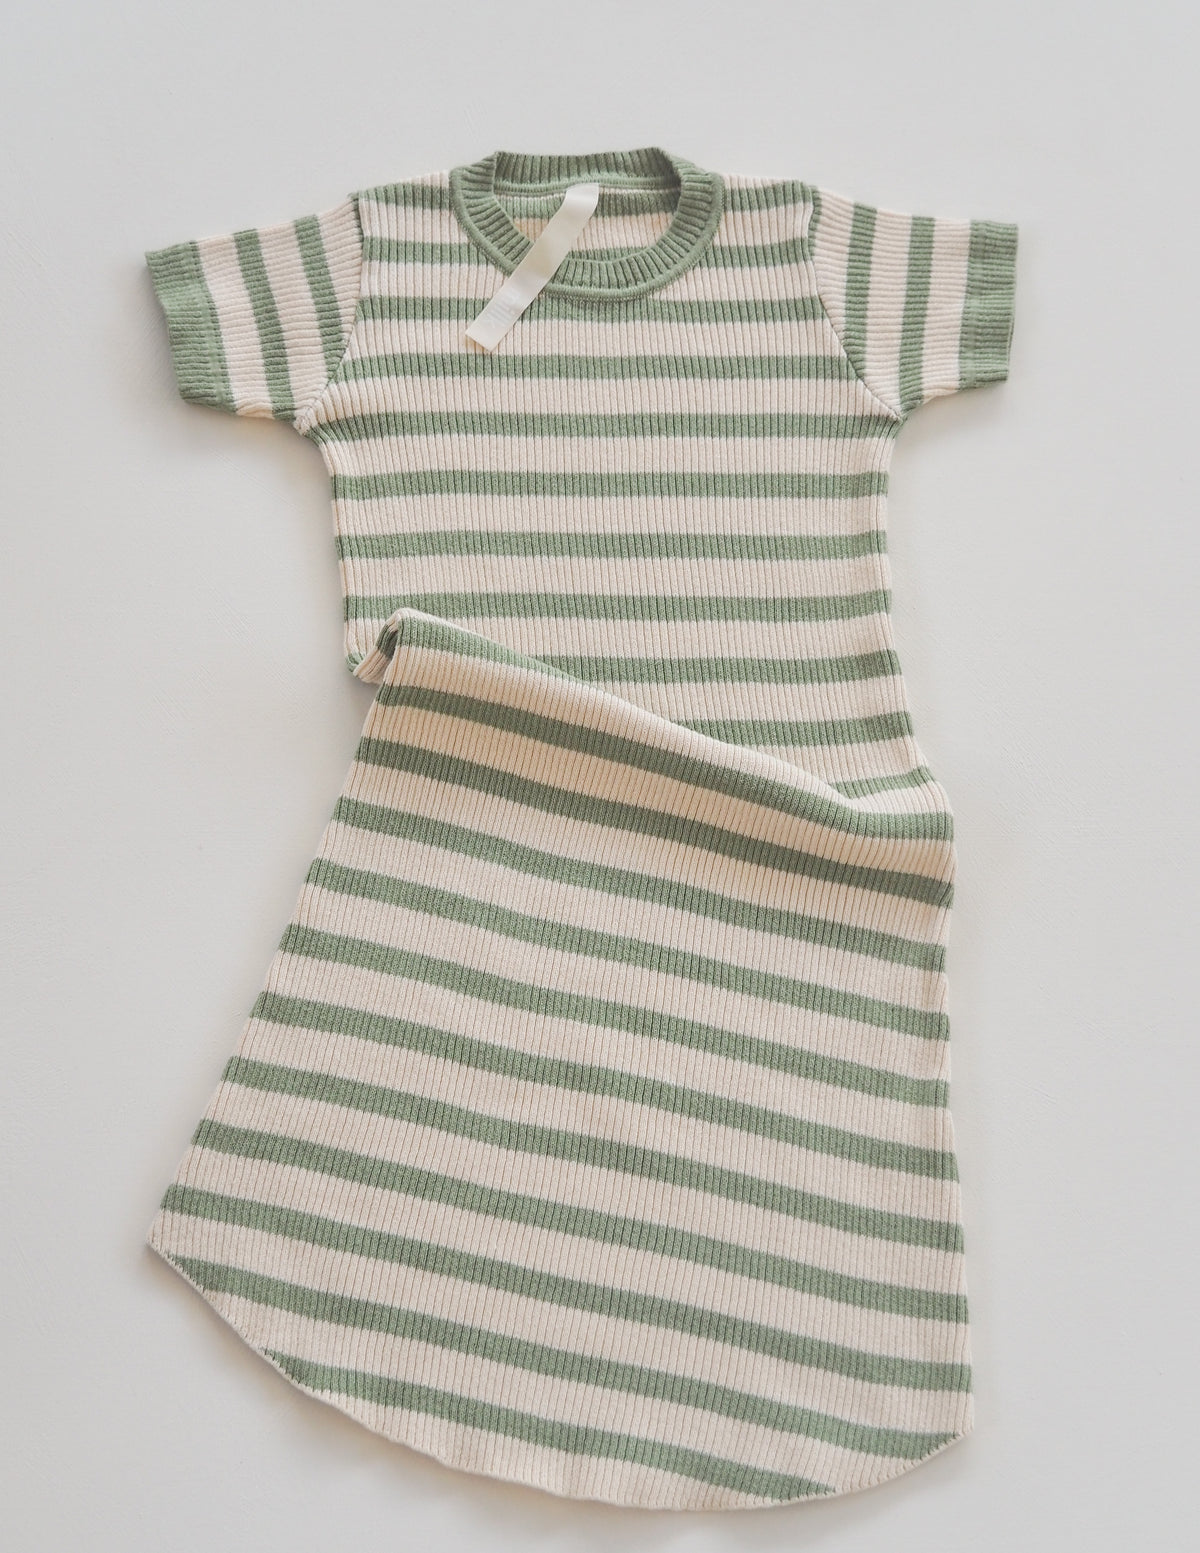 The Fancy Dress - Olive & Natural Stripe